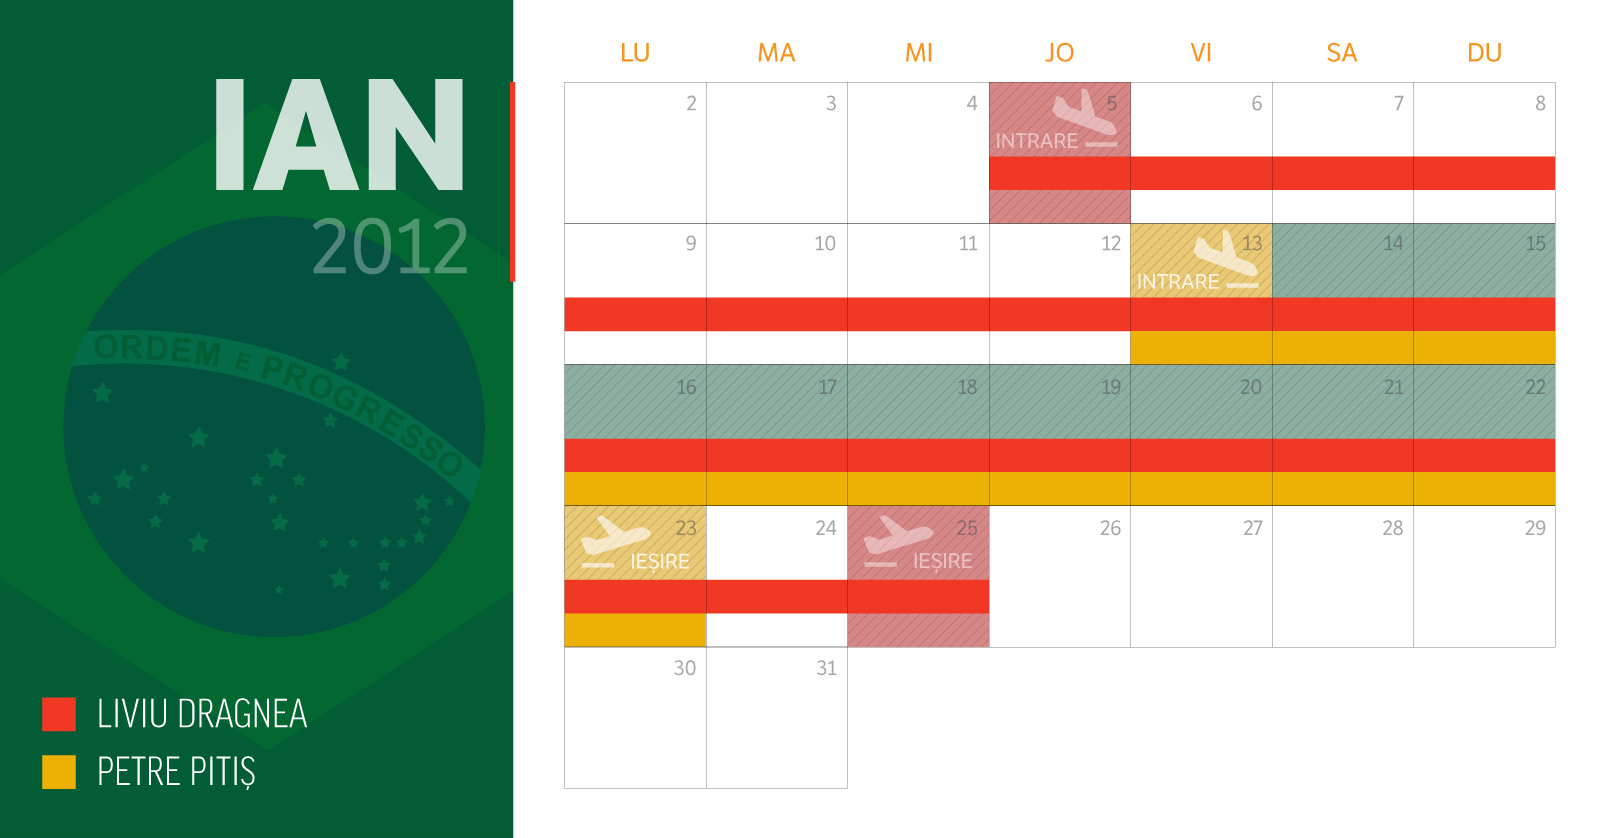 calendar_calatorii_brazilia_dragnea_teldrum_07_Ian_2012